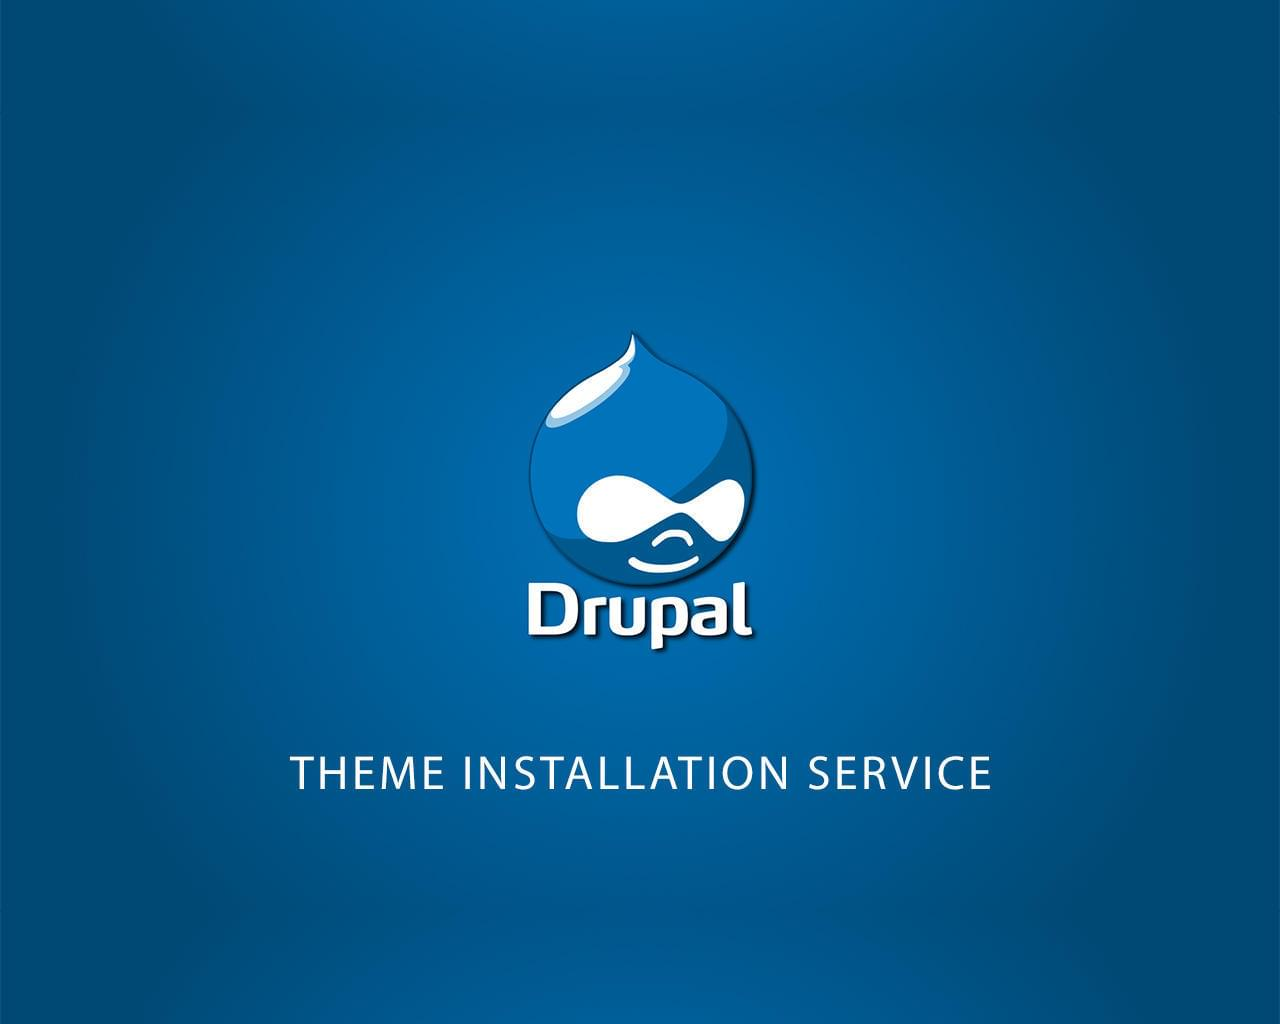 Express Drupal Installation by CoralixThemes - 115487